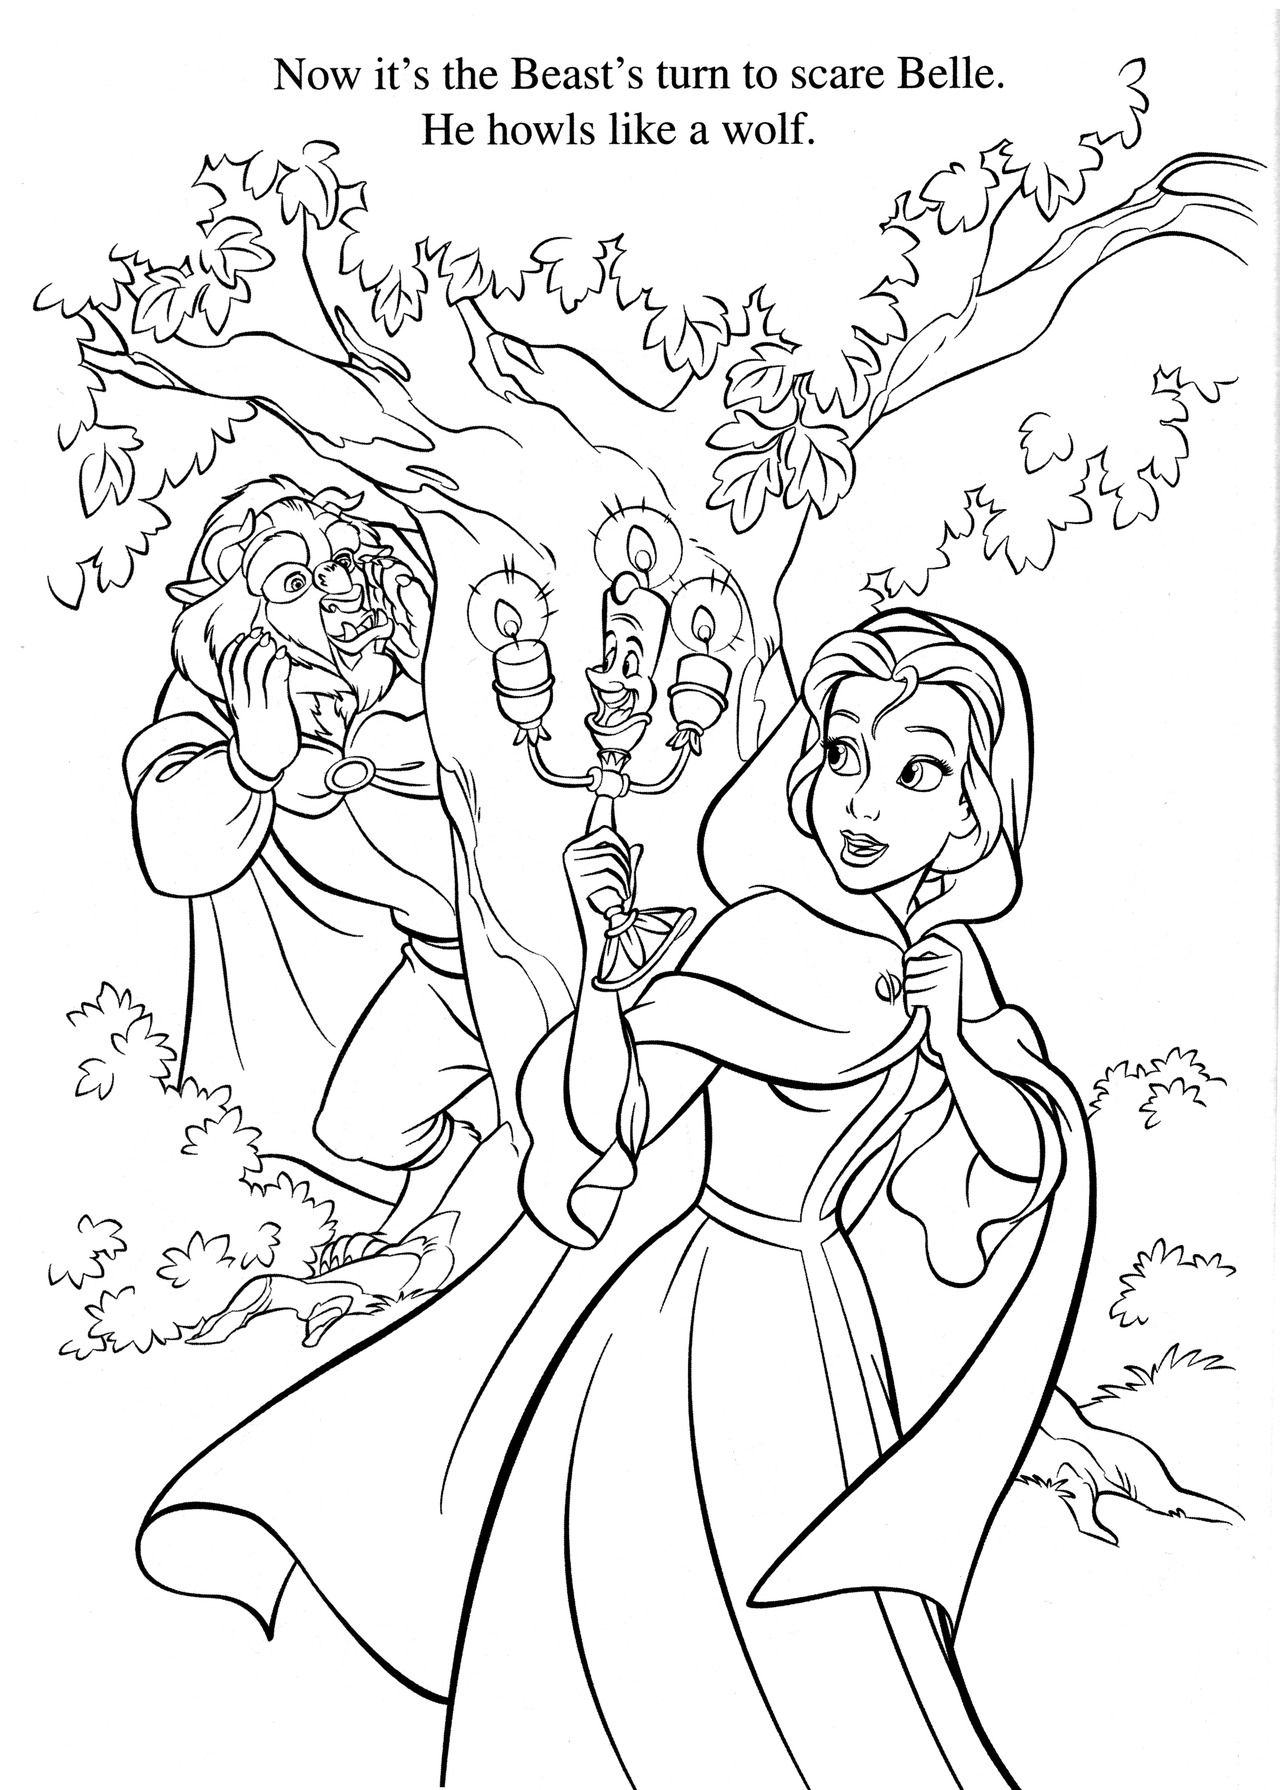 Disney Coloring Pages | imprimibles | Pinterest | Beast, Adult ...